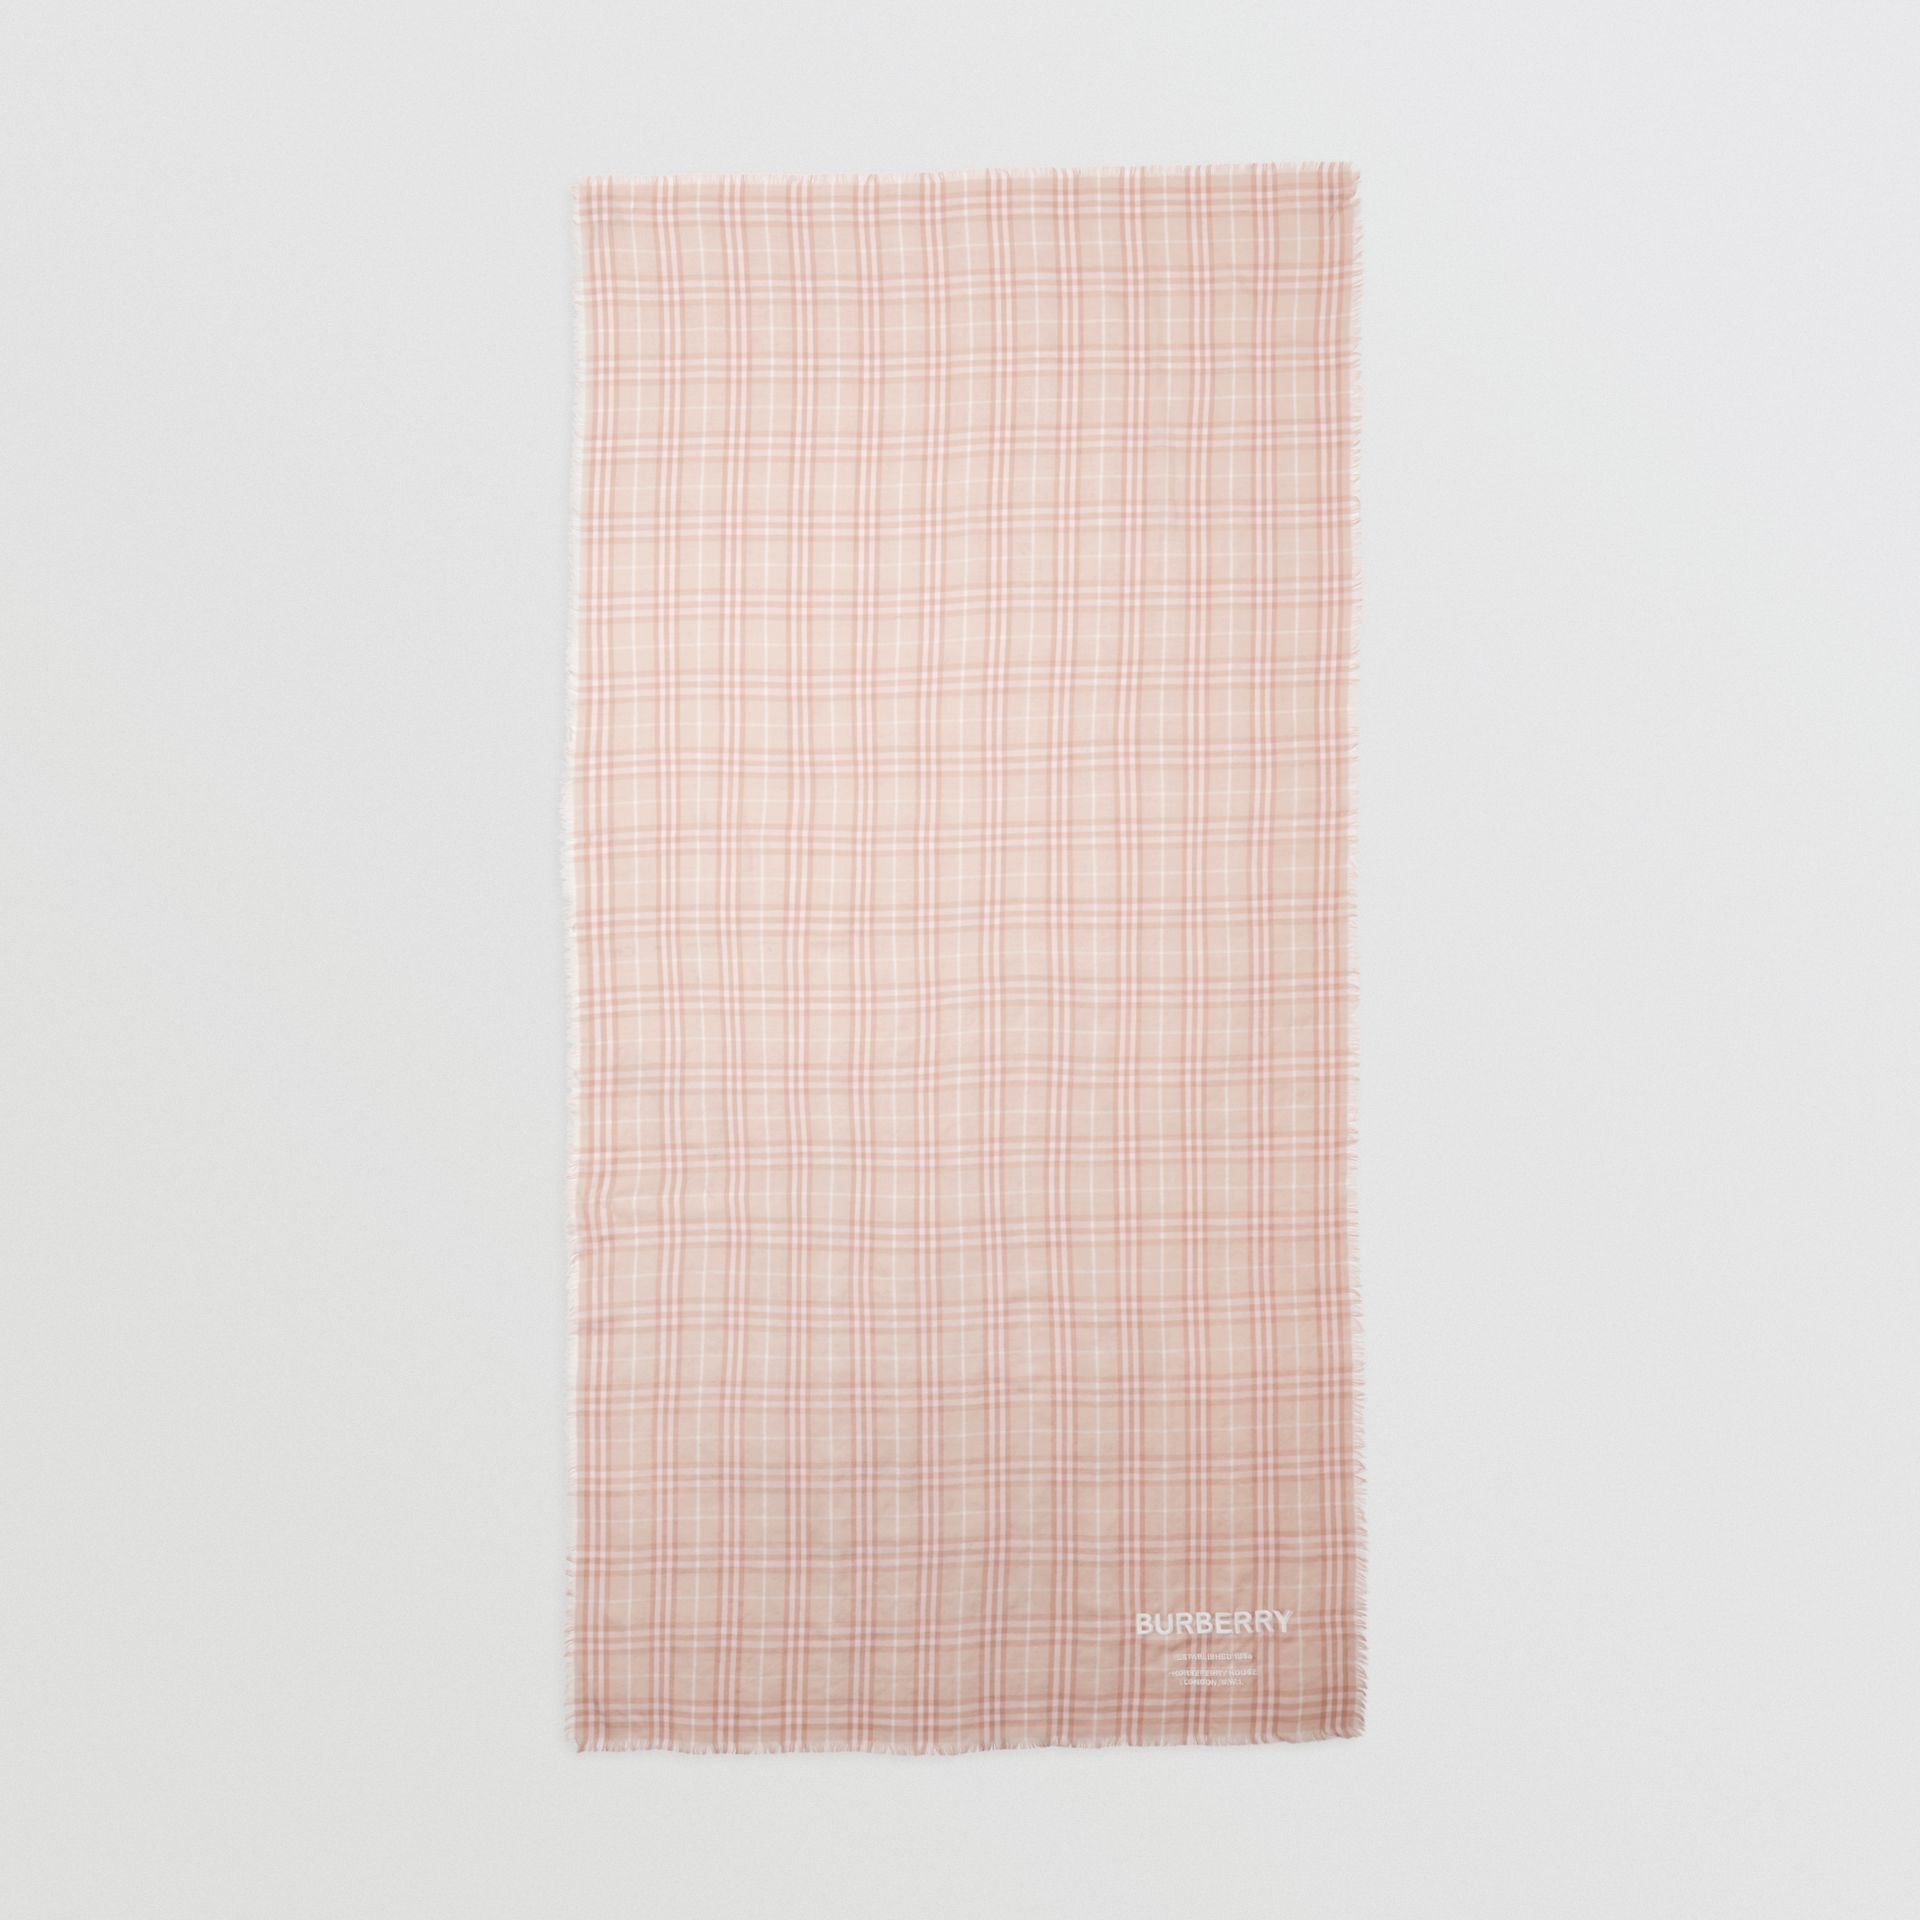 Embroidered Vintage Check Lightweight Cashmere Scarf in Soft Peach | Burberry - gallery image 5